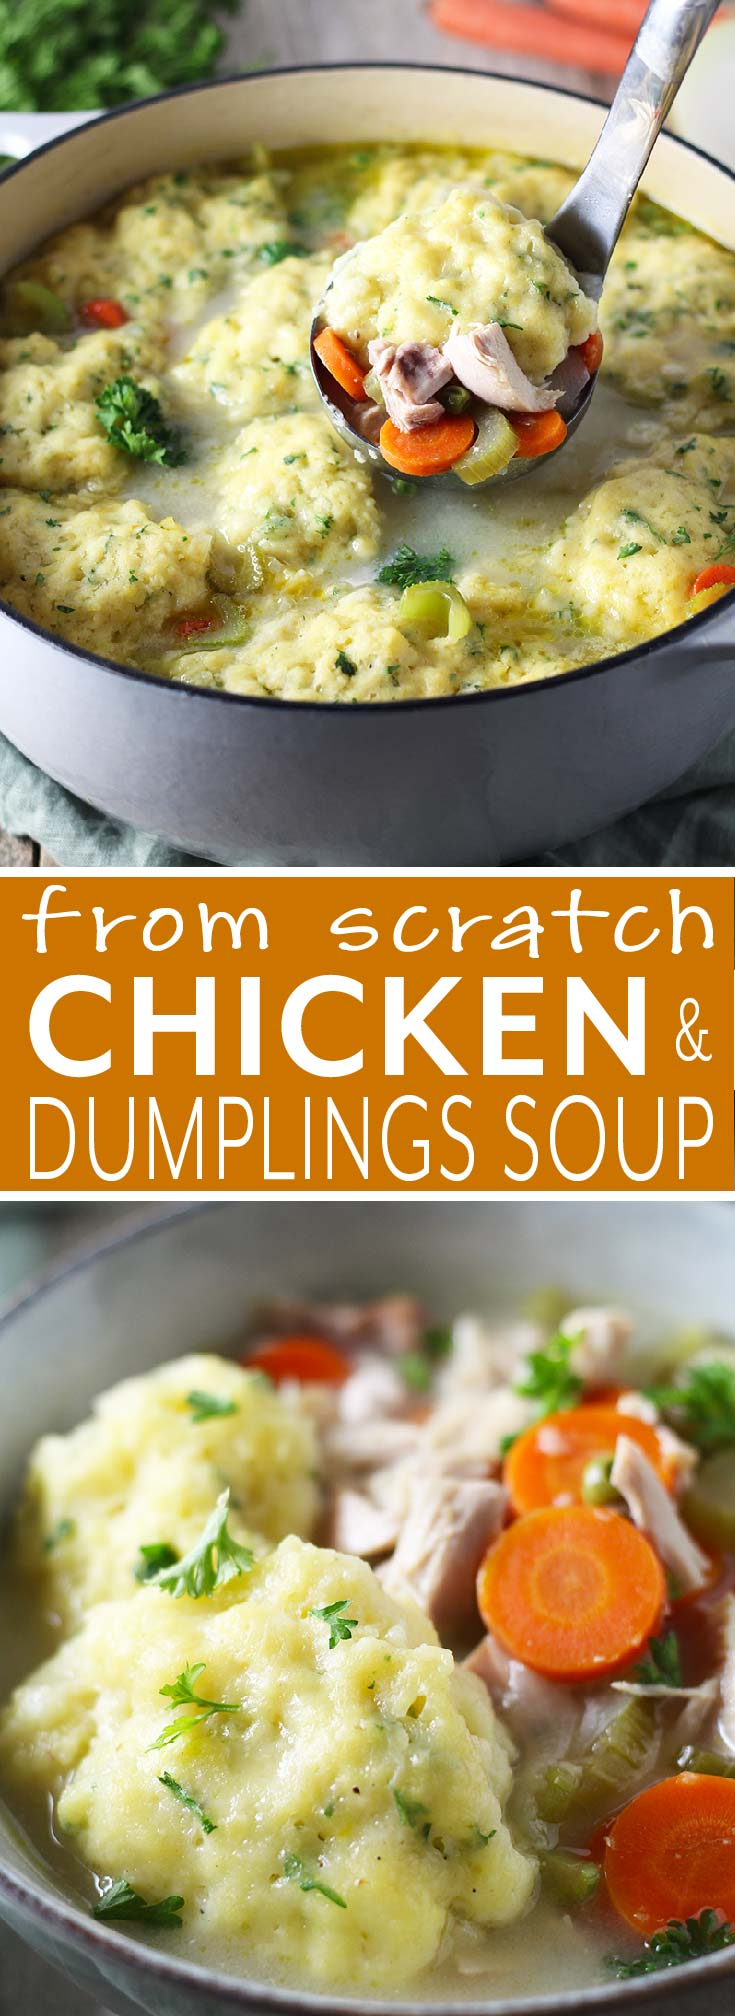 Classic, hearty version of Chicken and Dumplings Soup made from scratch using a whole chicken to make the tastiest broth. Easy-to-make, loaded with vegetables, and topped with fluffy homemade dumplings.